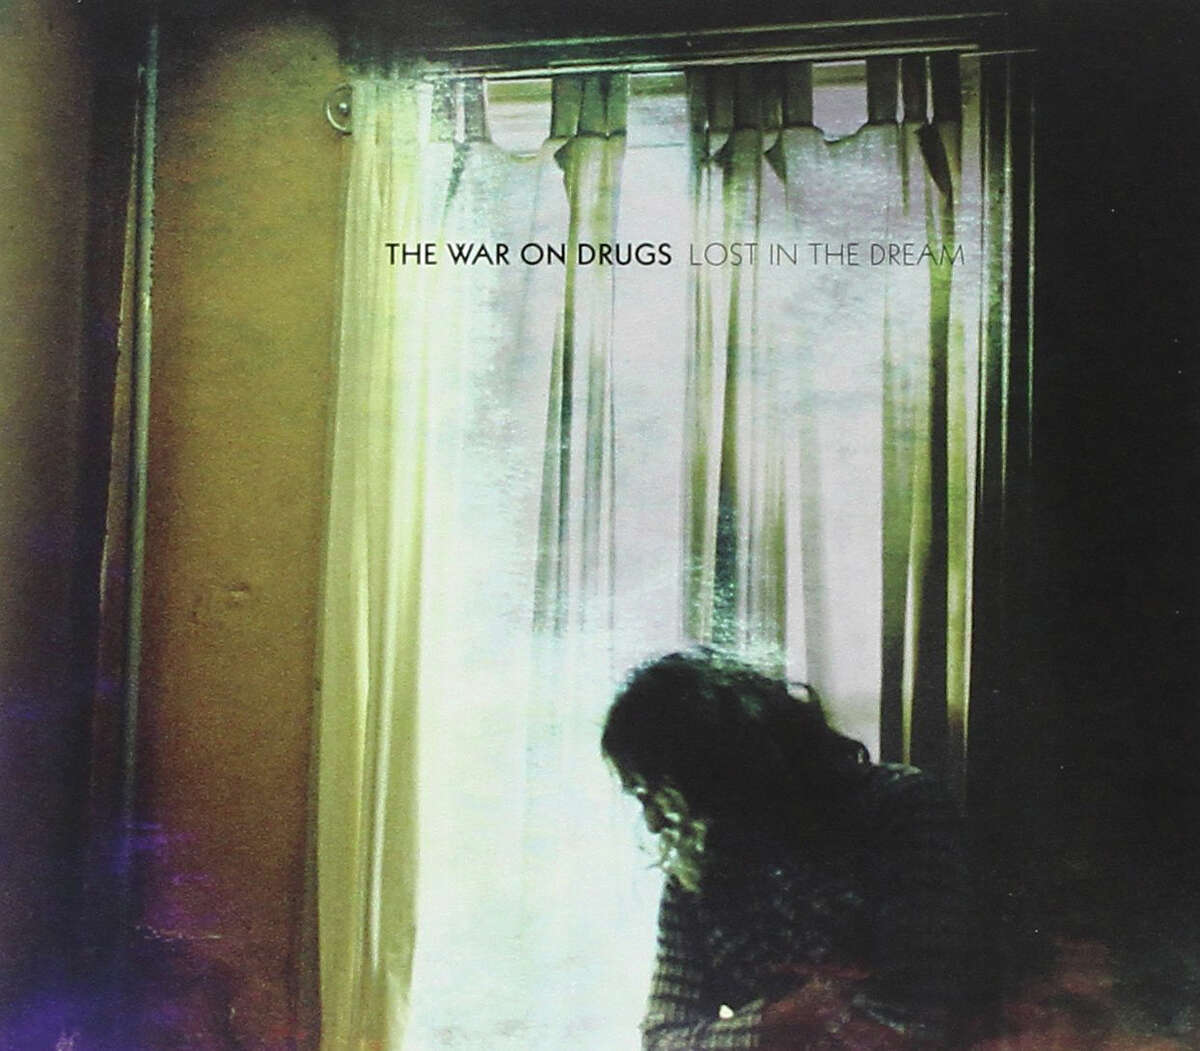 The War On Drugs Lost In The Dream (Secretly Canadian)